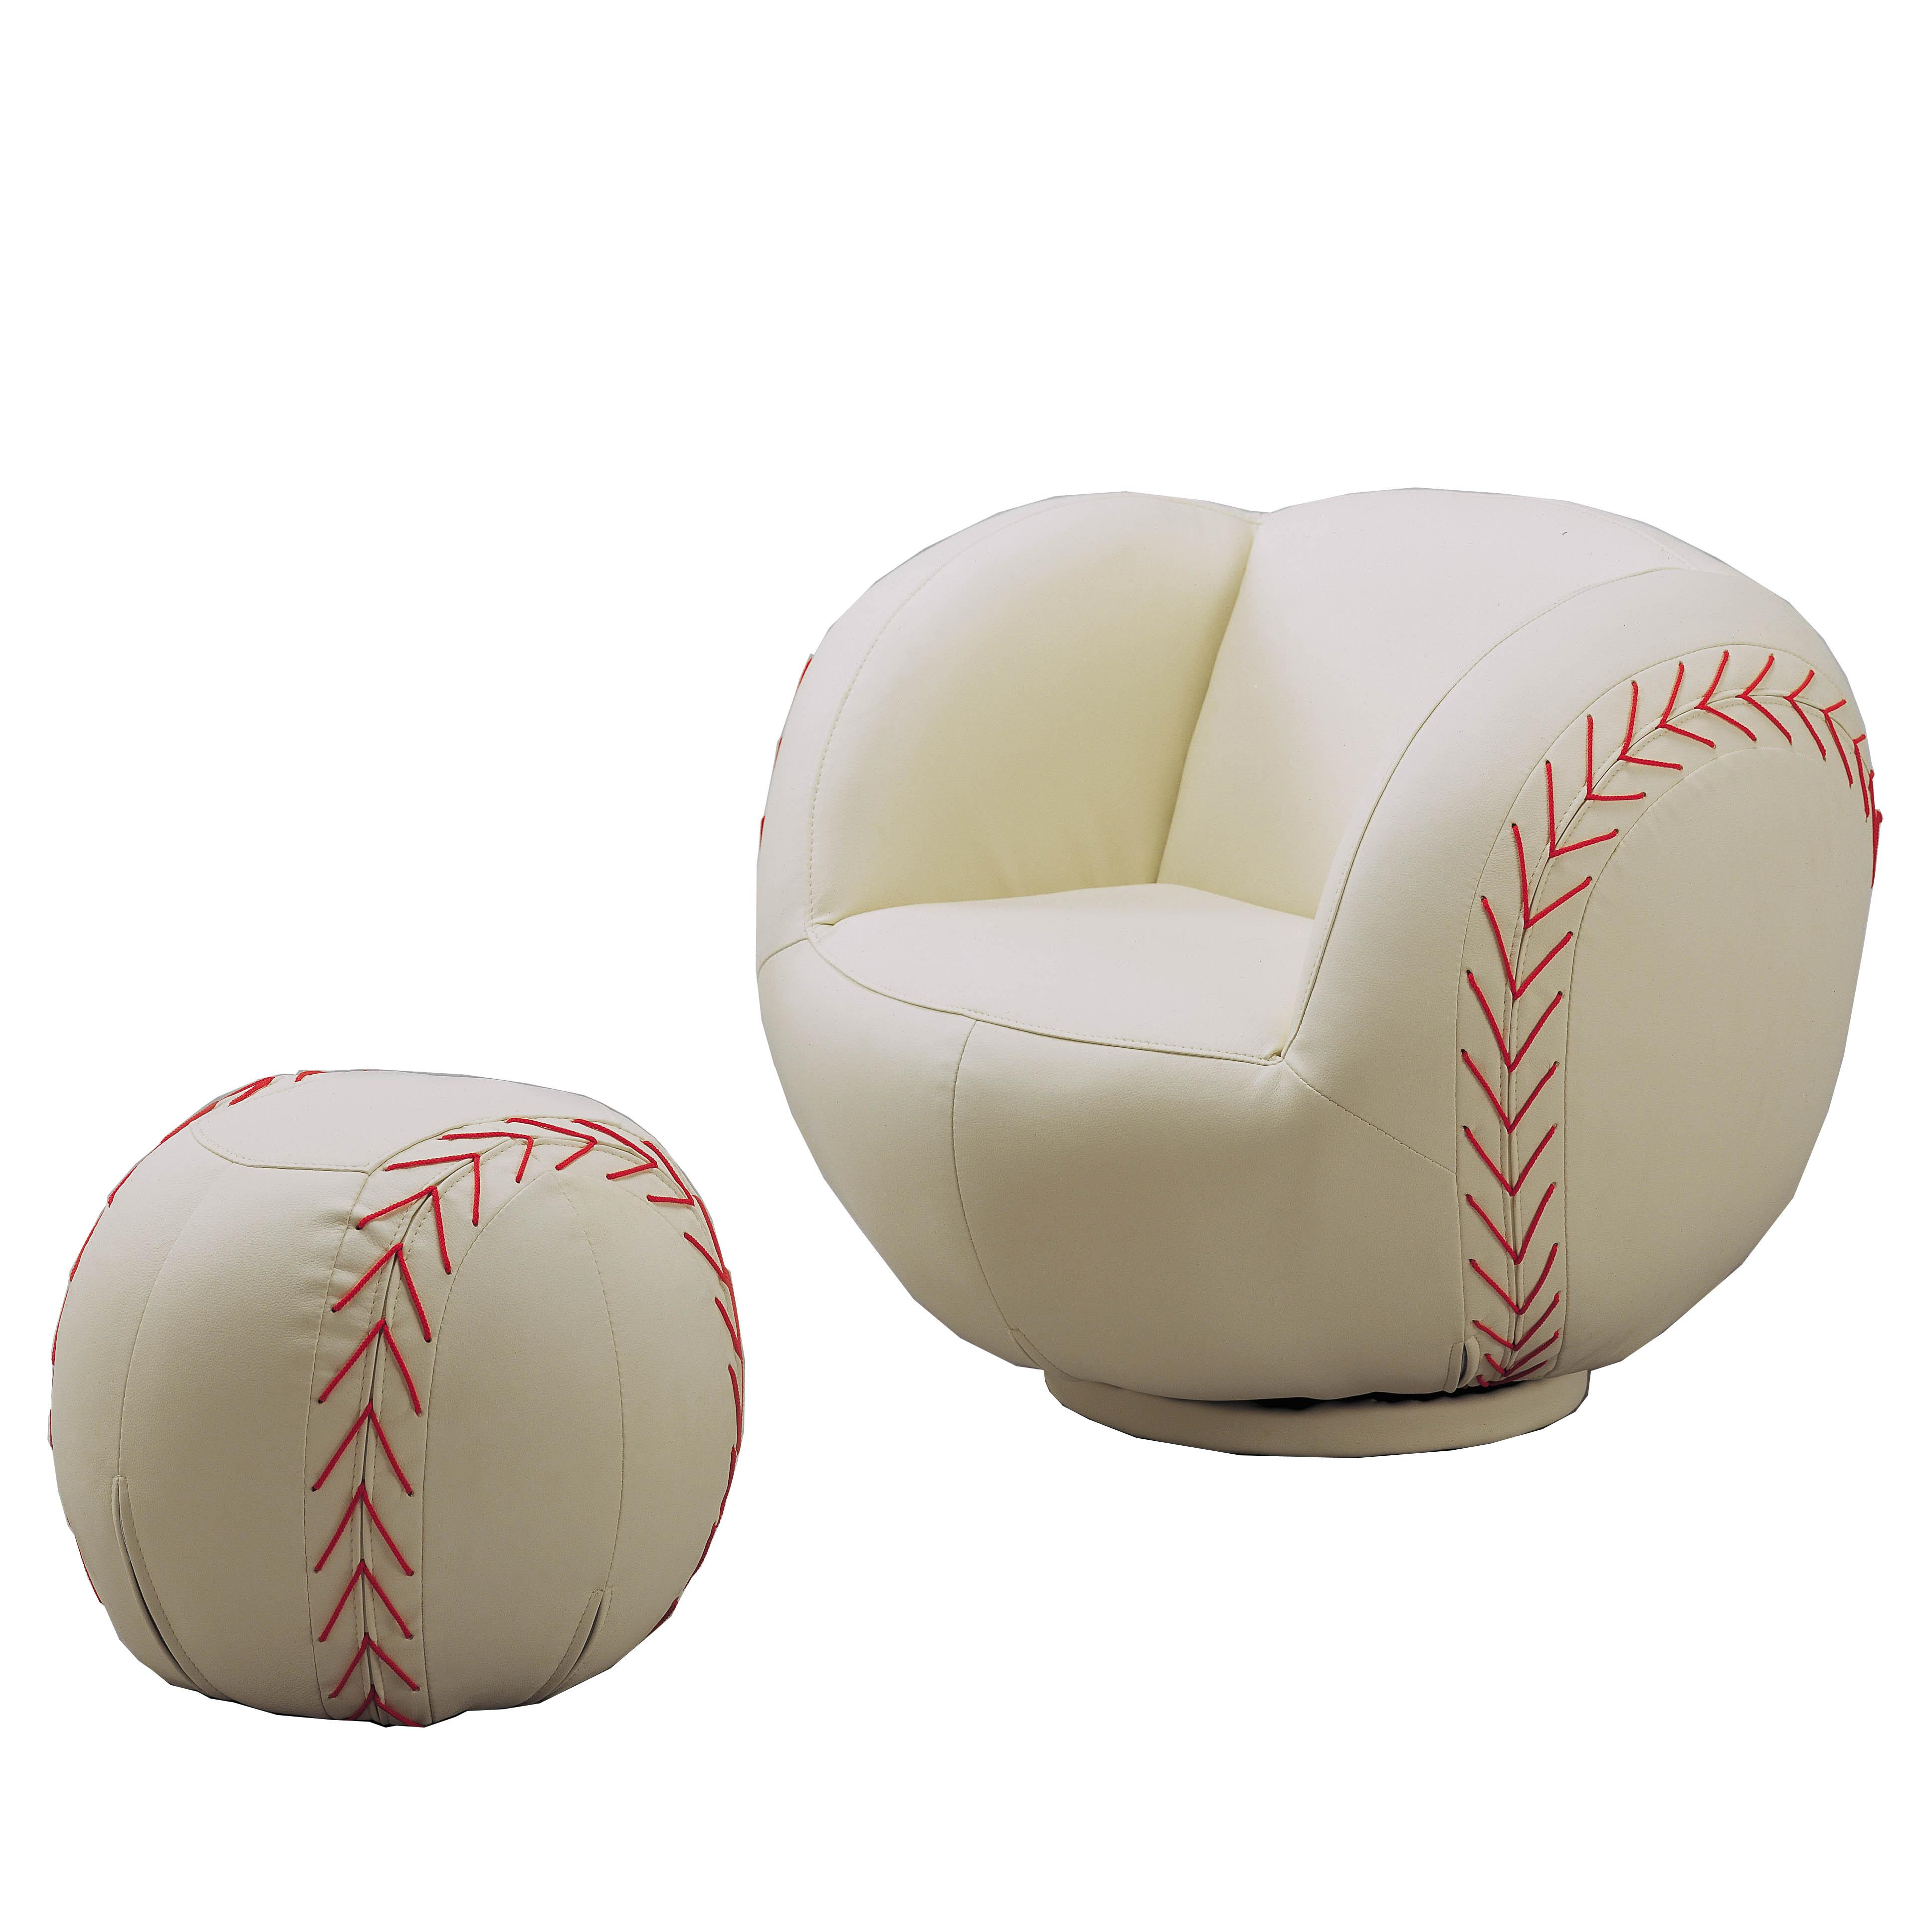 Acme Furniture Sporty Youth Sport Chairs - Item Number: 05528 SET